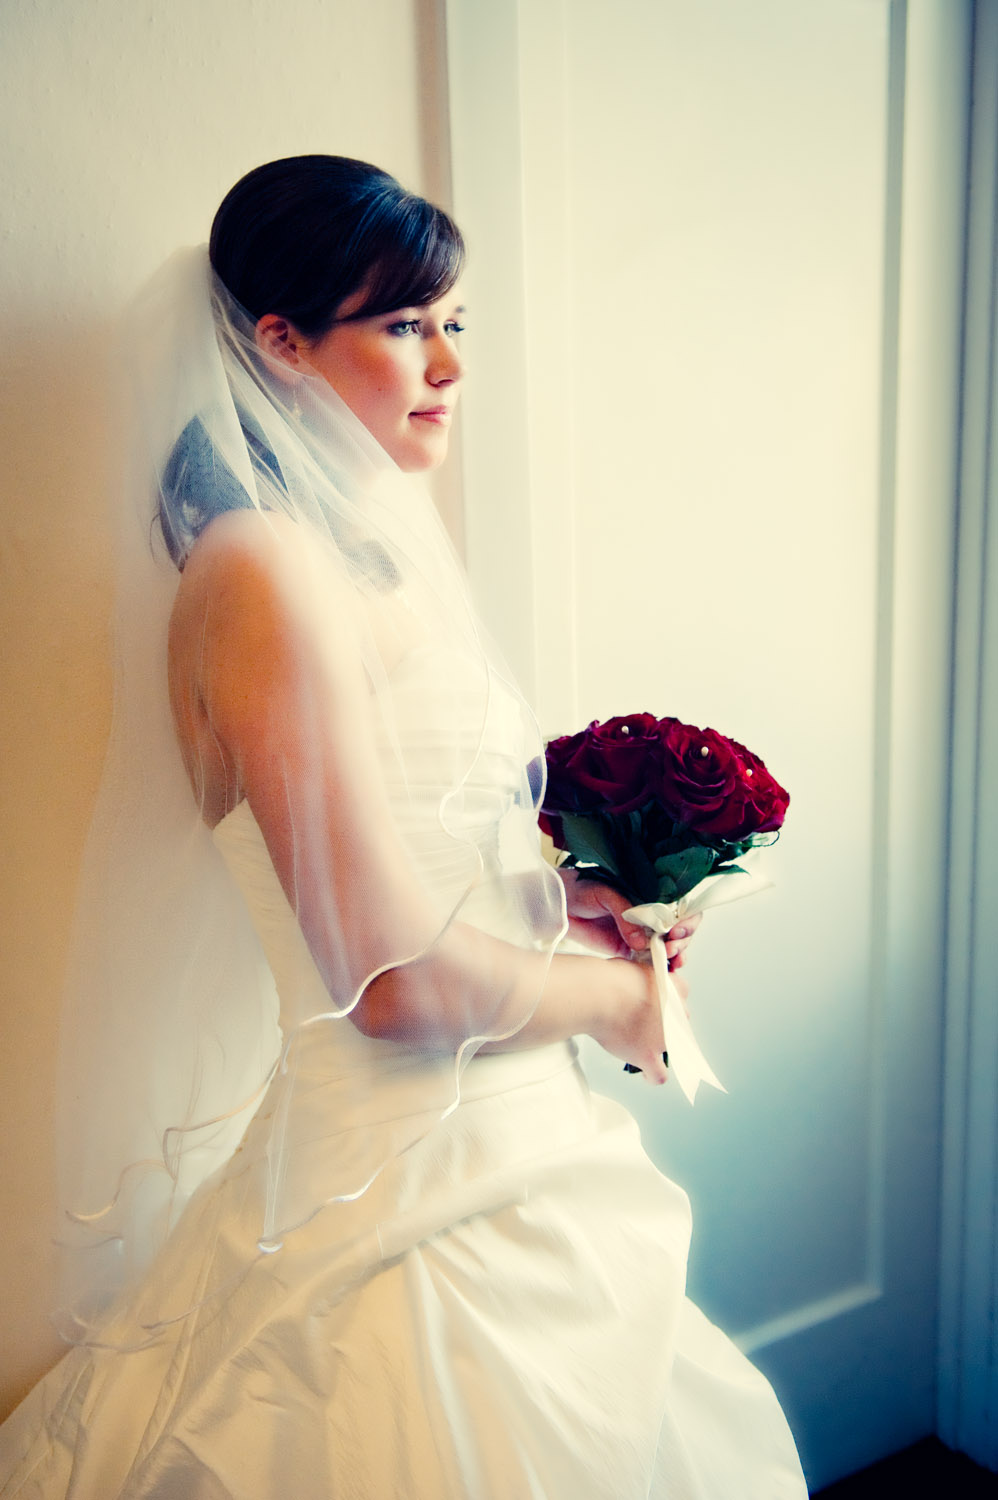 portrait of a bride wedding day-4.jpg